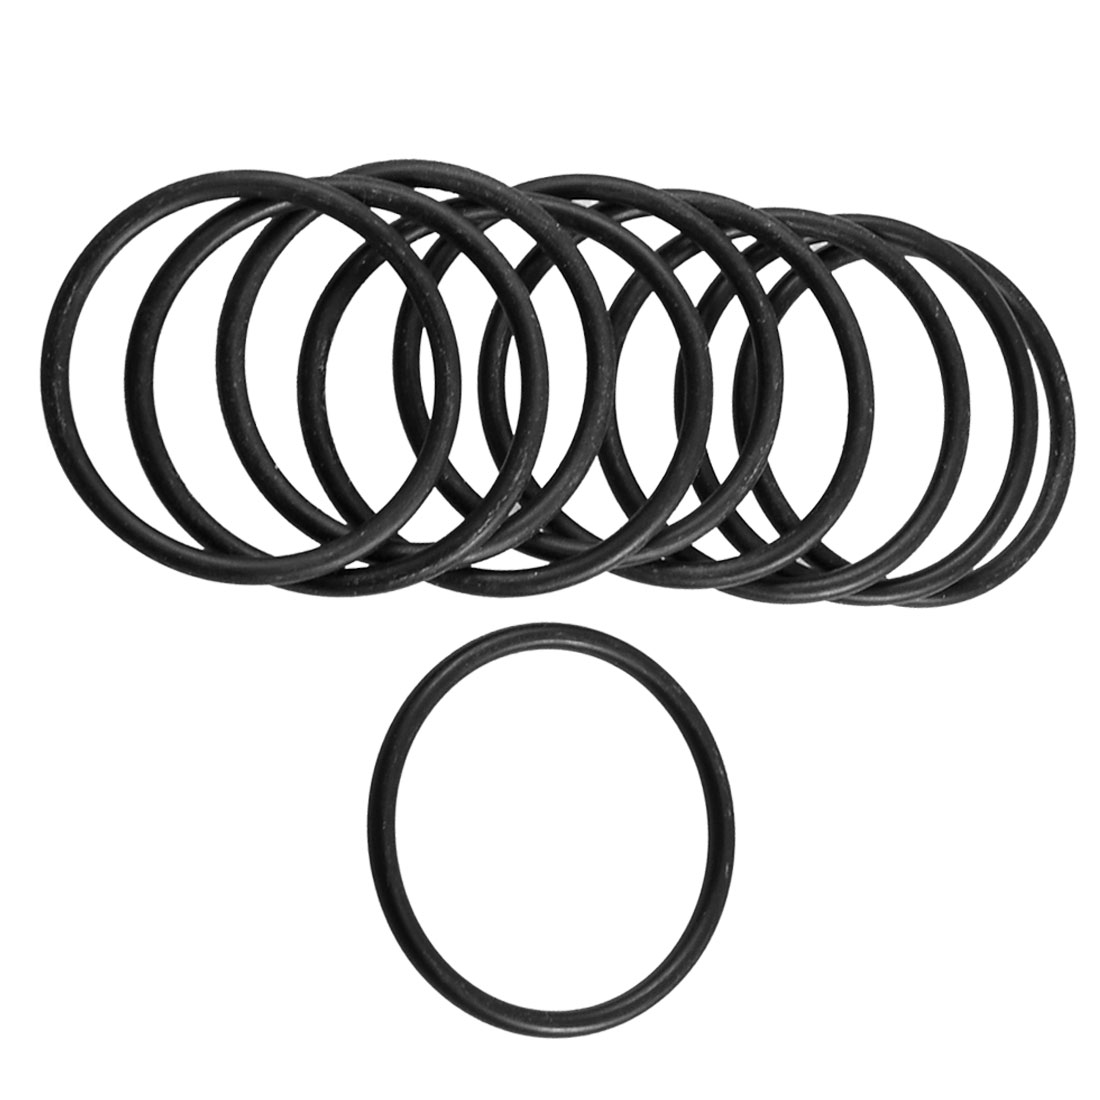 10 Pcs Mechanical Rubber O Ring Oil Seal Gaskets 43mm x 37mm x 3.1mm